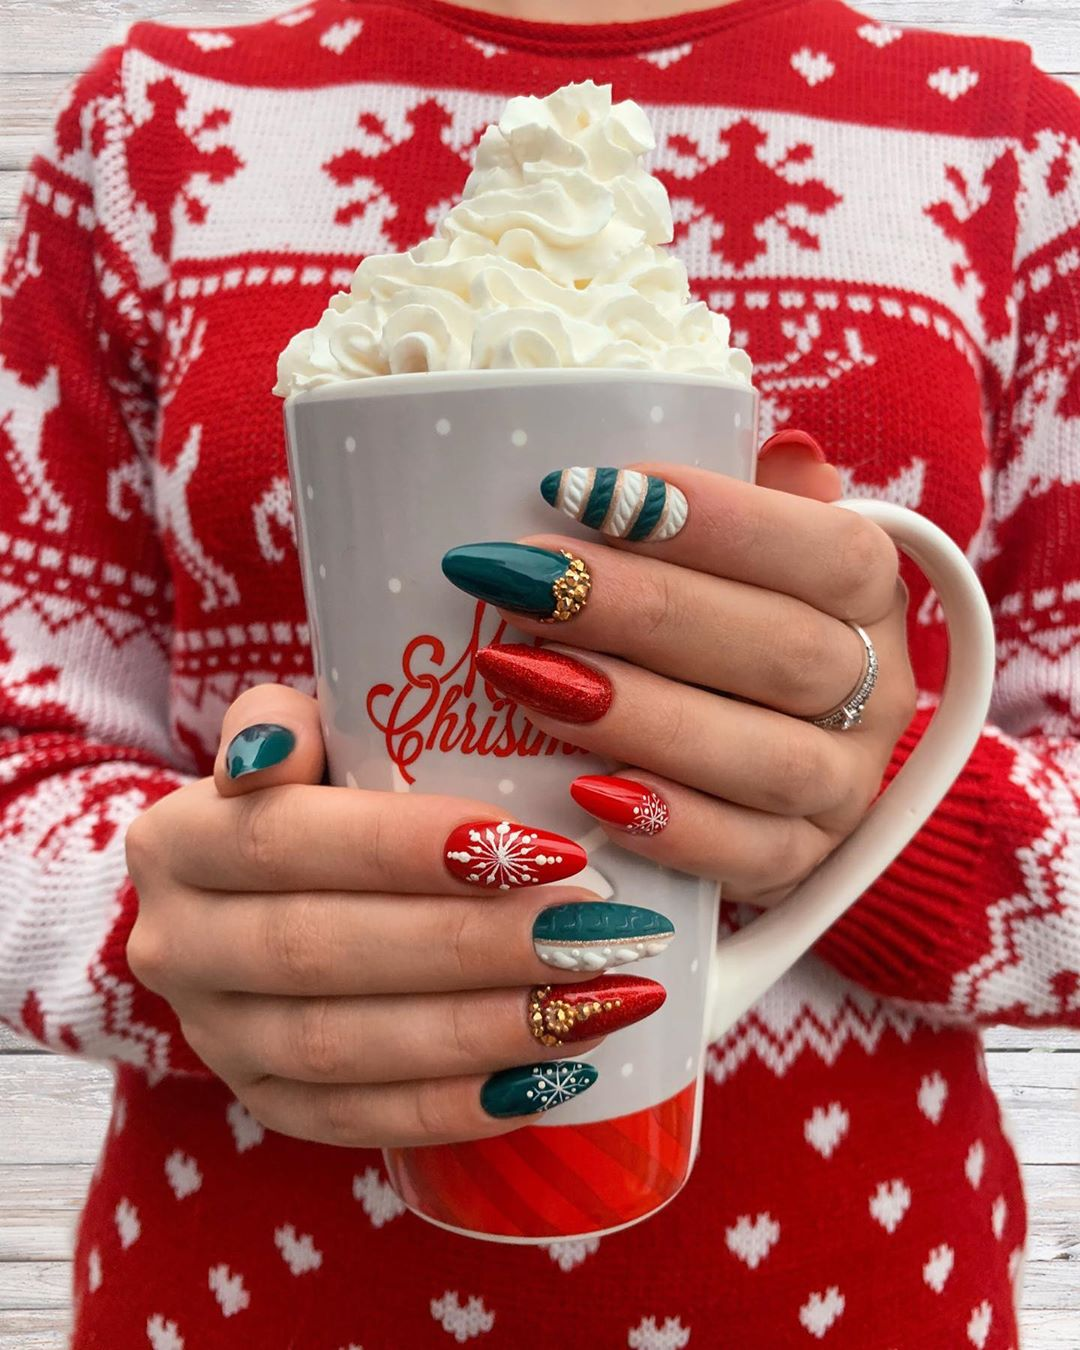 updated 50 festive christmas nails august 2020 updated 50 festive christmas nails